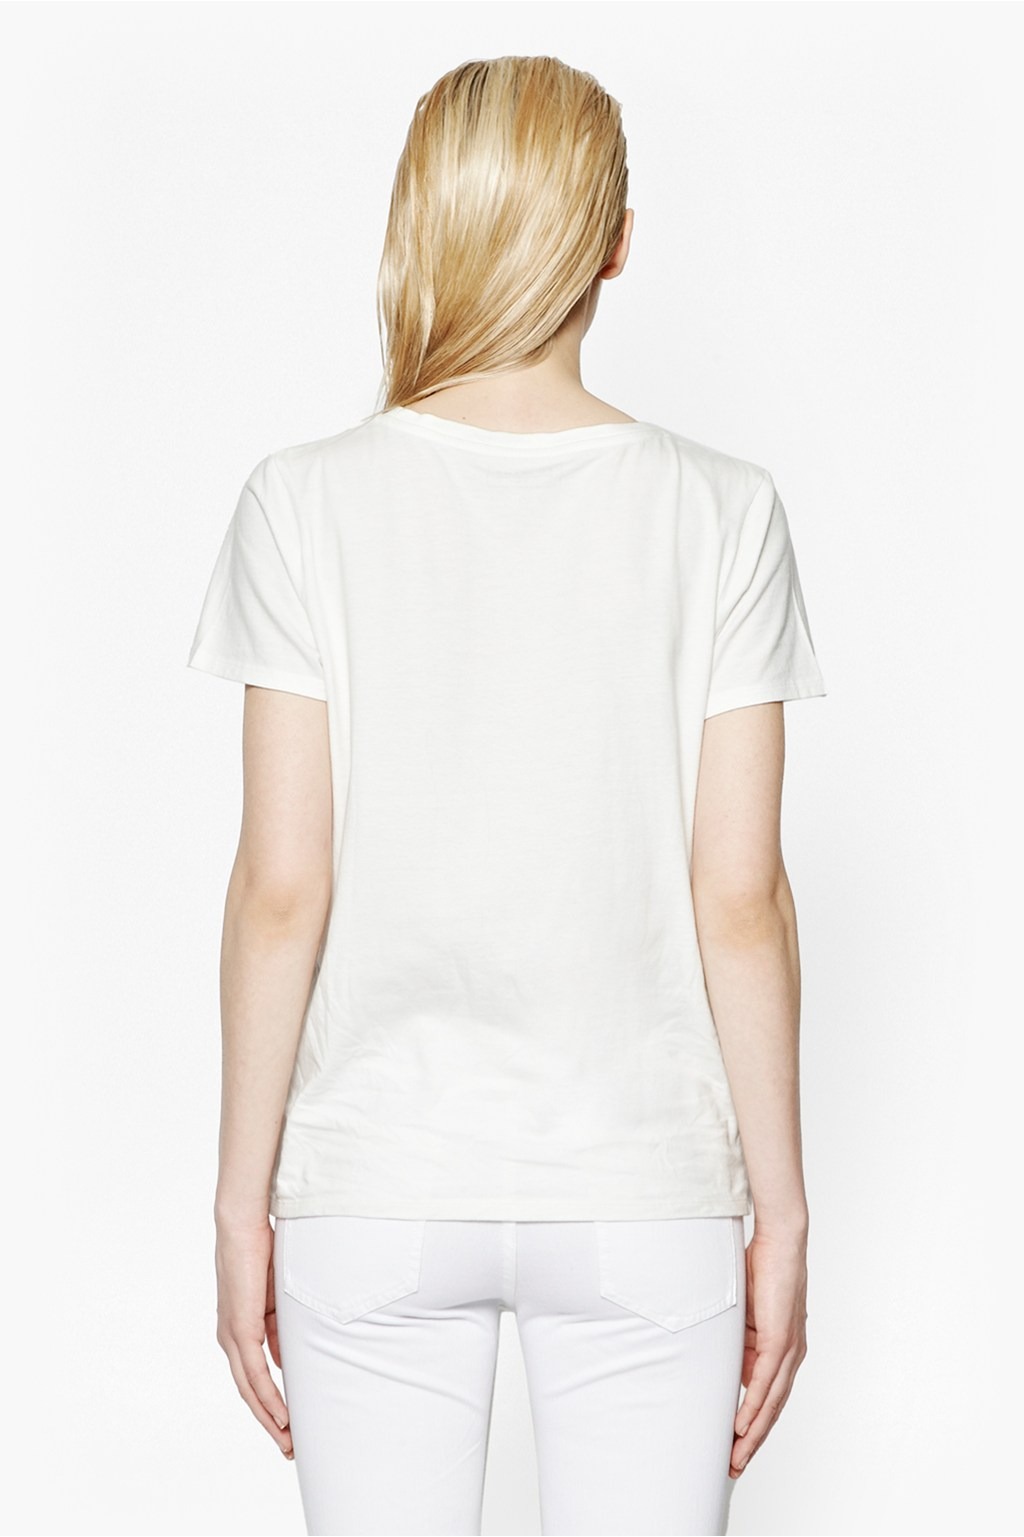 French Connection Fcuk Fame Slogan T Shirt In White Lyst